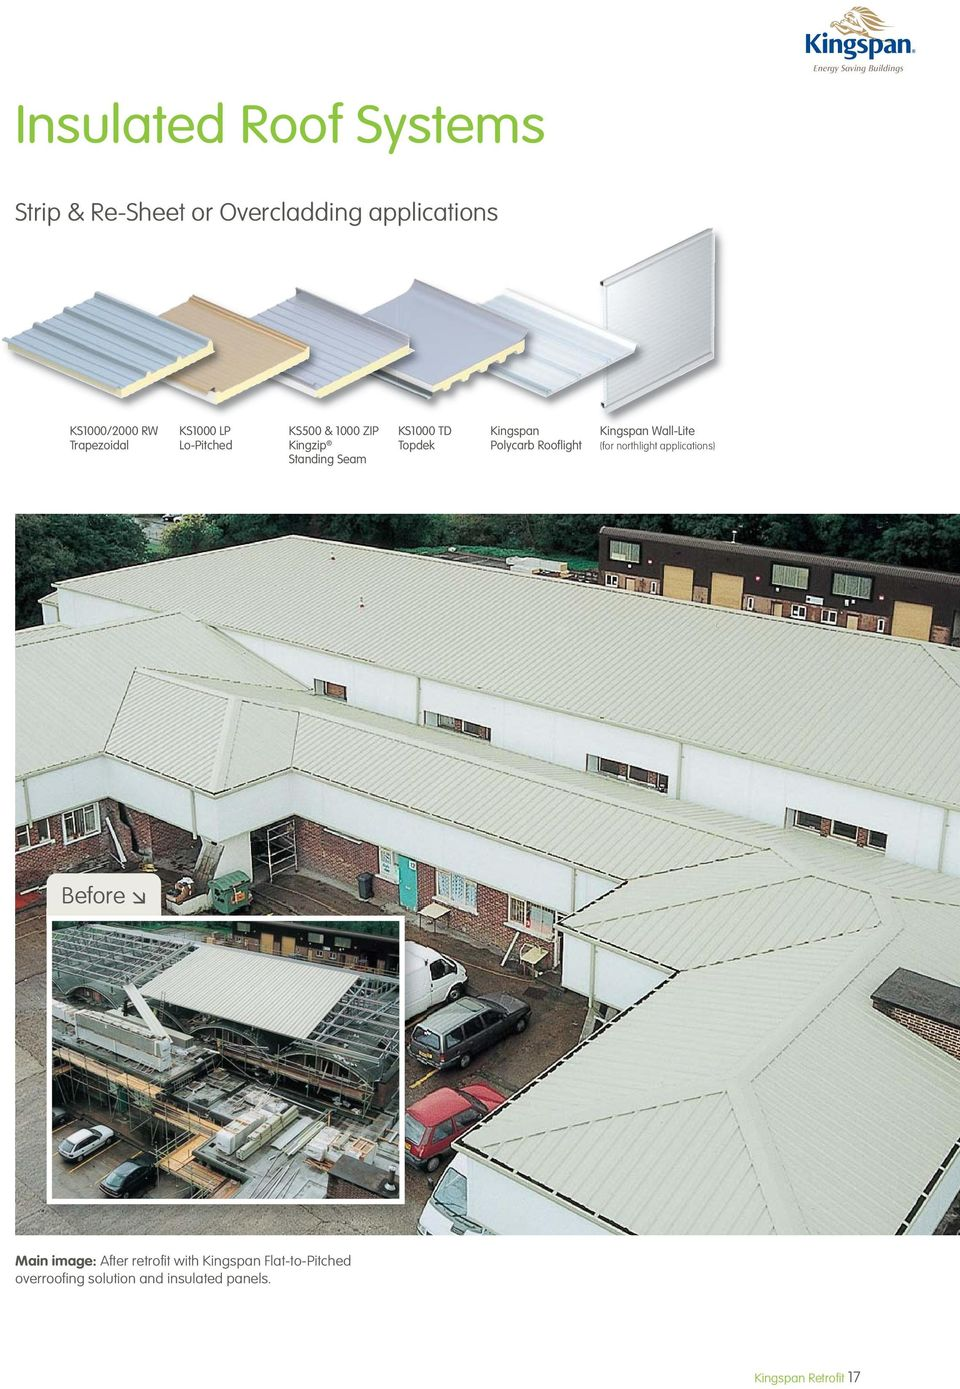 Topdek Kingspan Polycarb Rooflight Kingspan Wall-Lite (for northlight applications) Before Main